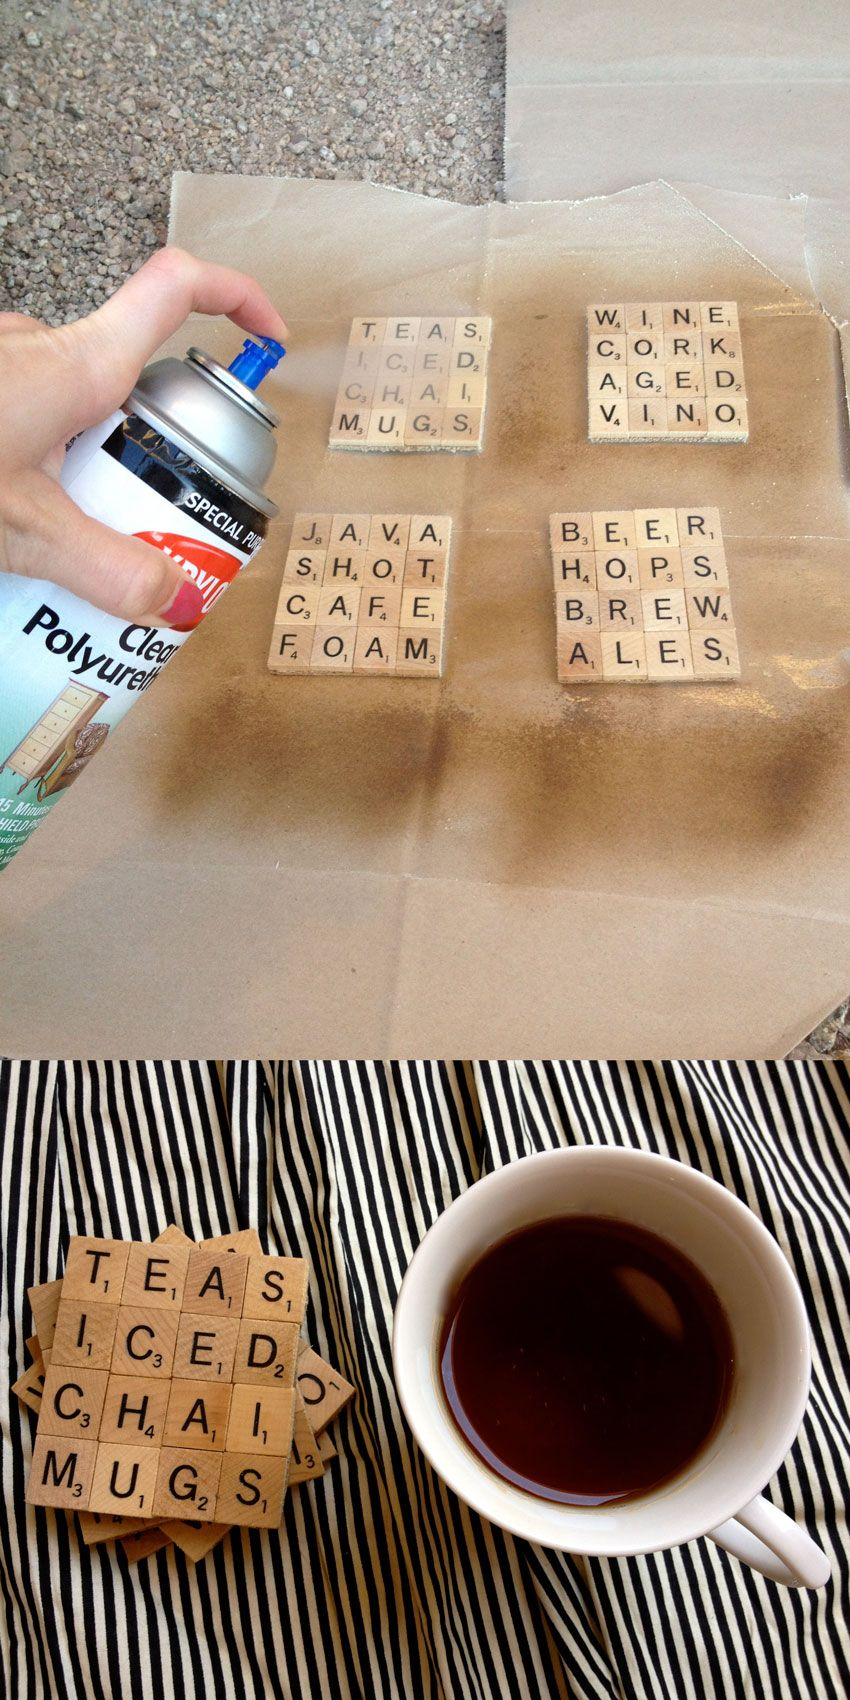 Scrabble Coasters. I tend not to pin coasters because they are EVERYWHERE AND NO ONE NEEDS MORE but I actually really love these